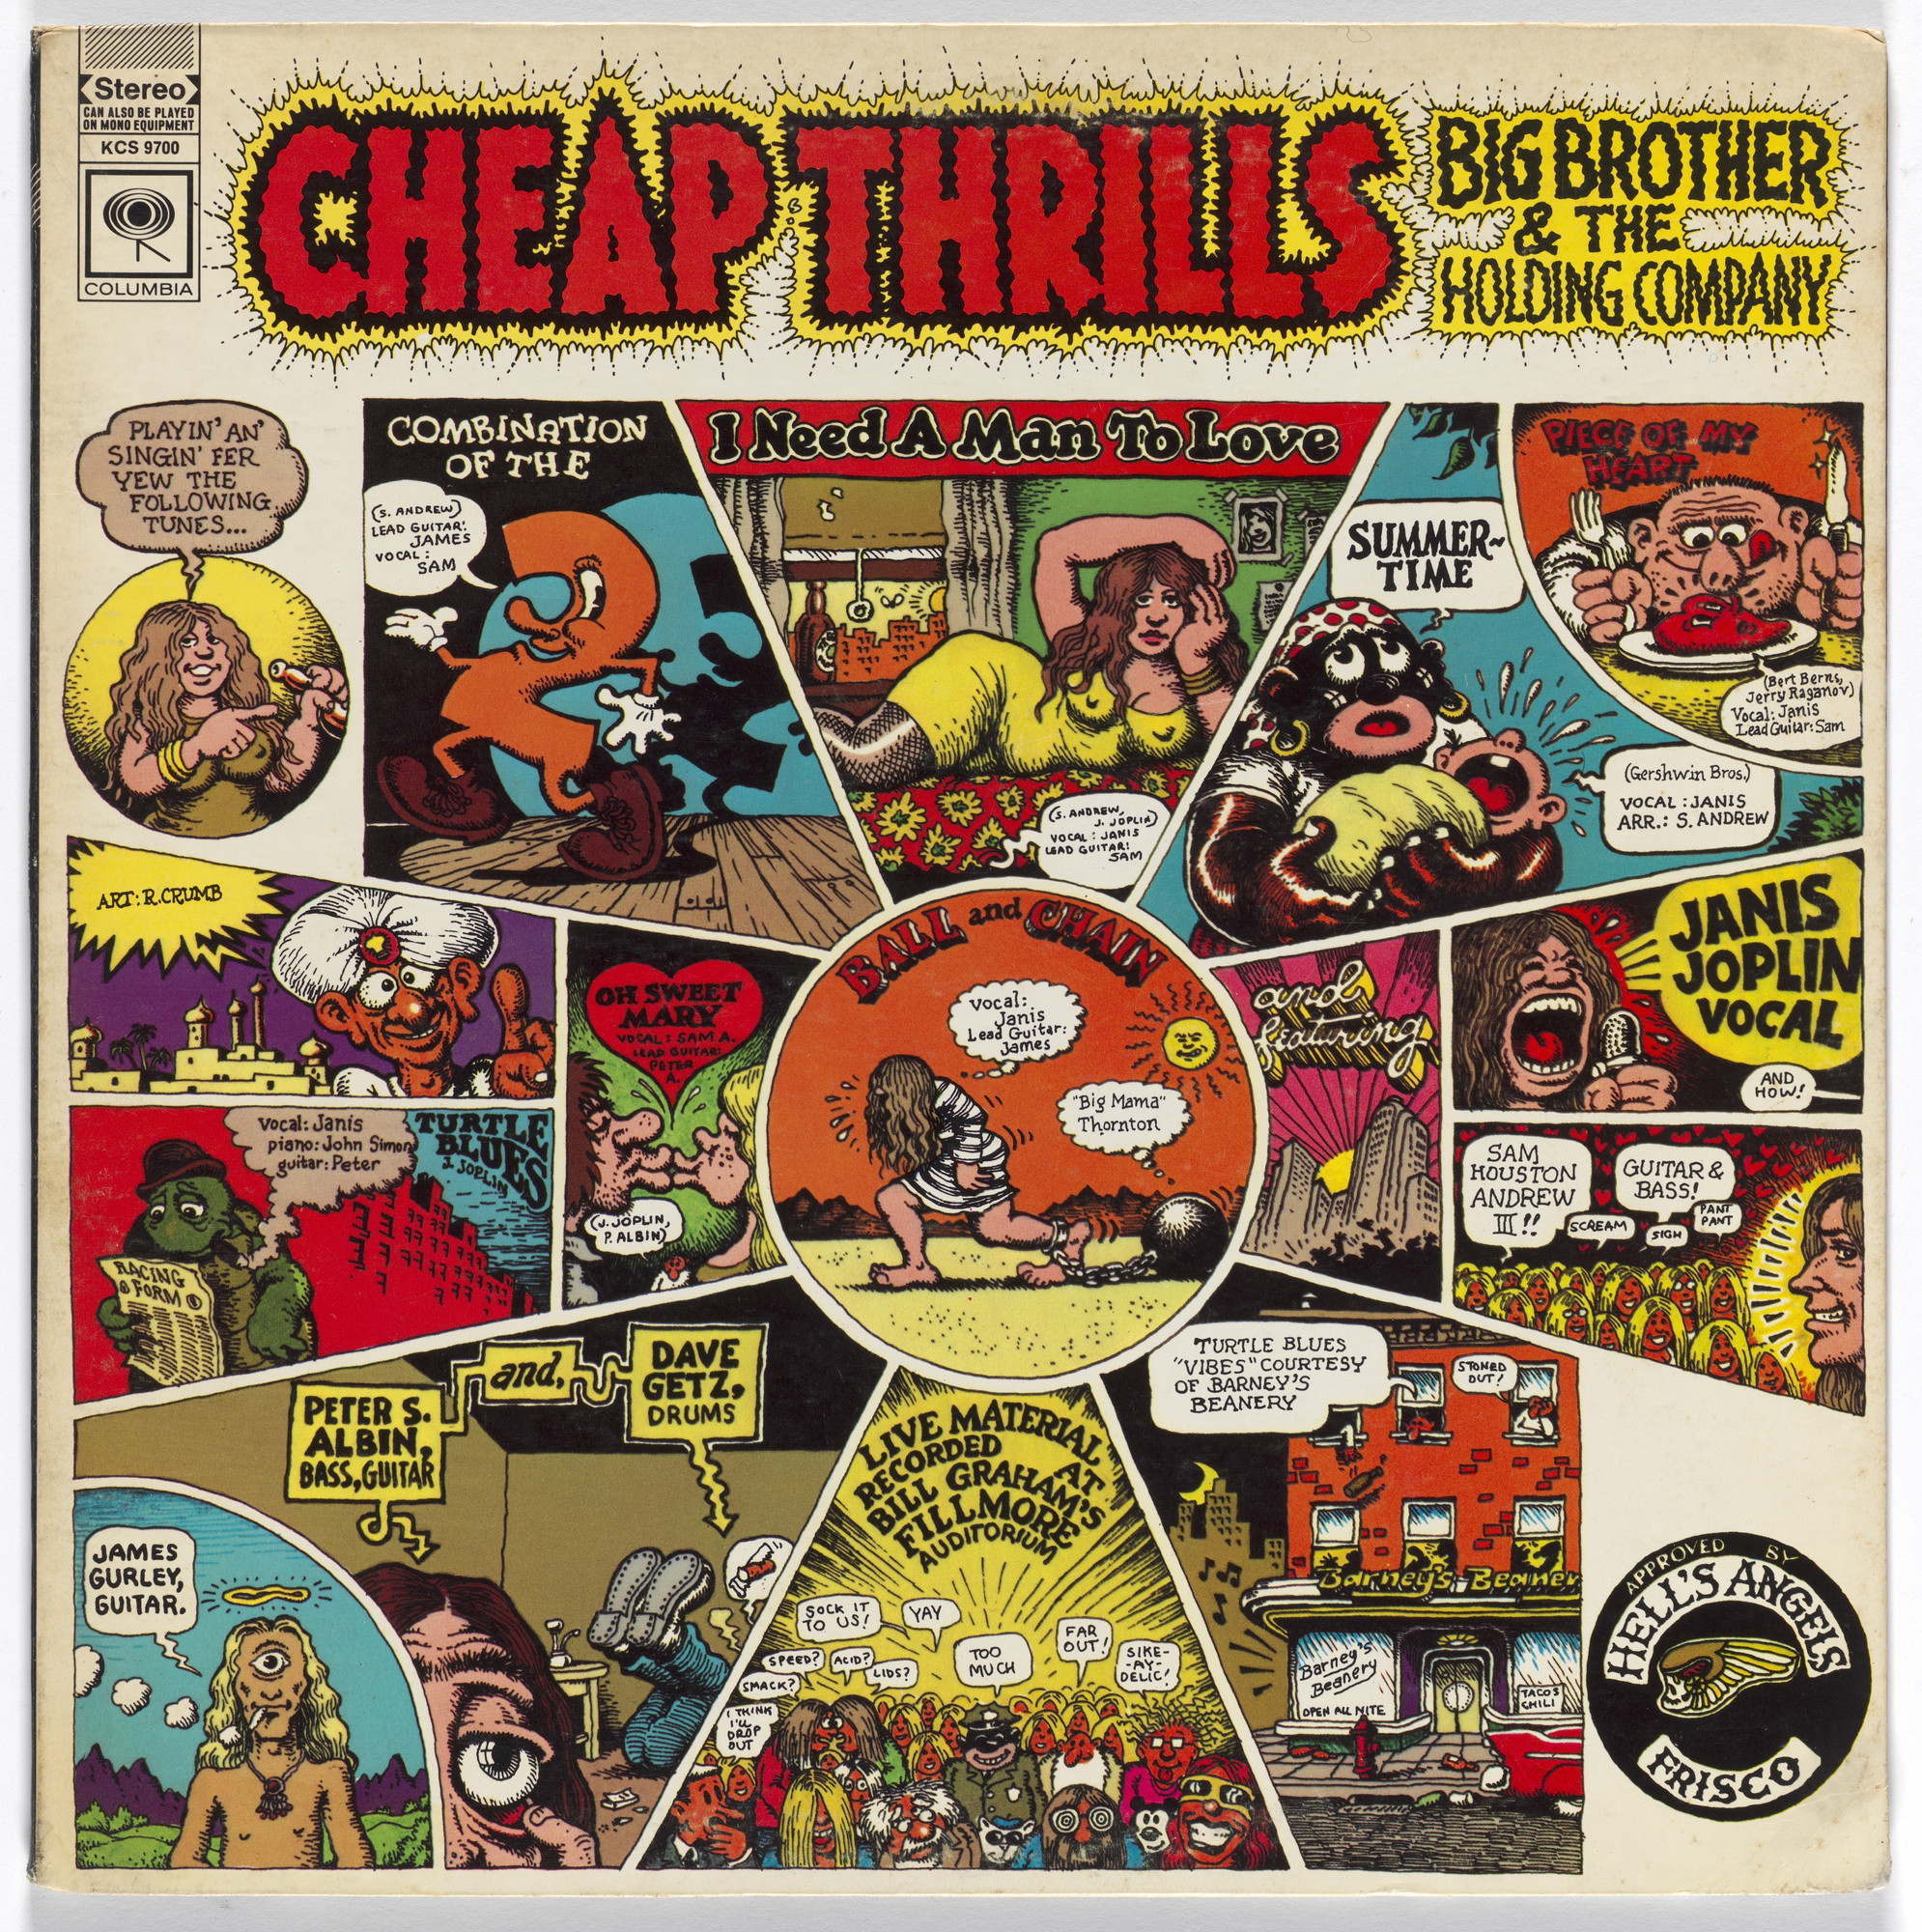 R. Crumb. Album cover for Big Brother and the Holding Company, Cheap Thrills. 1968